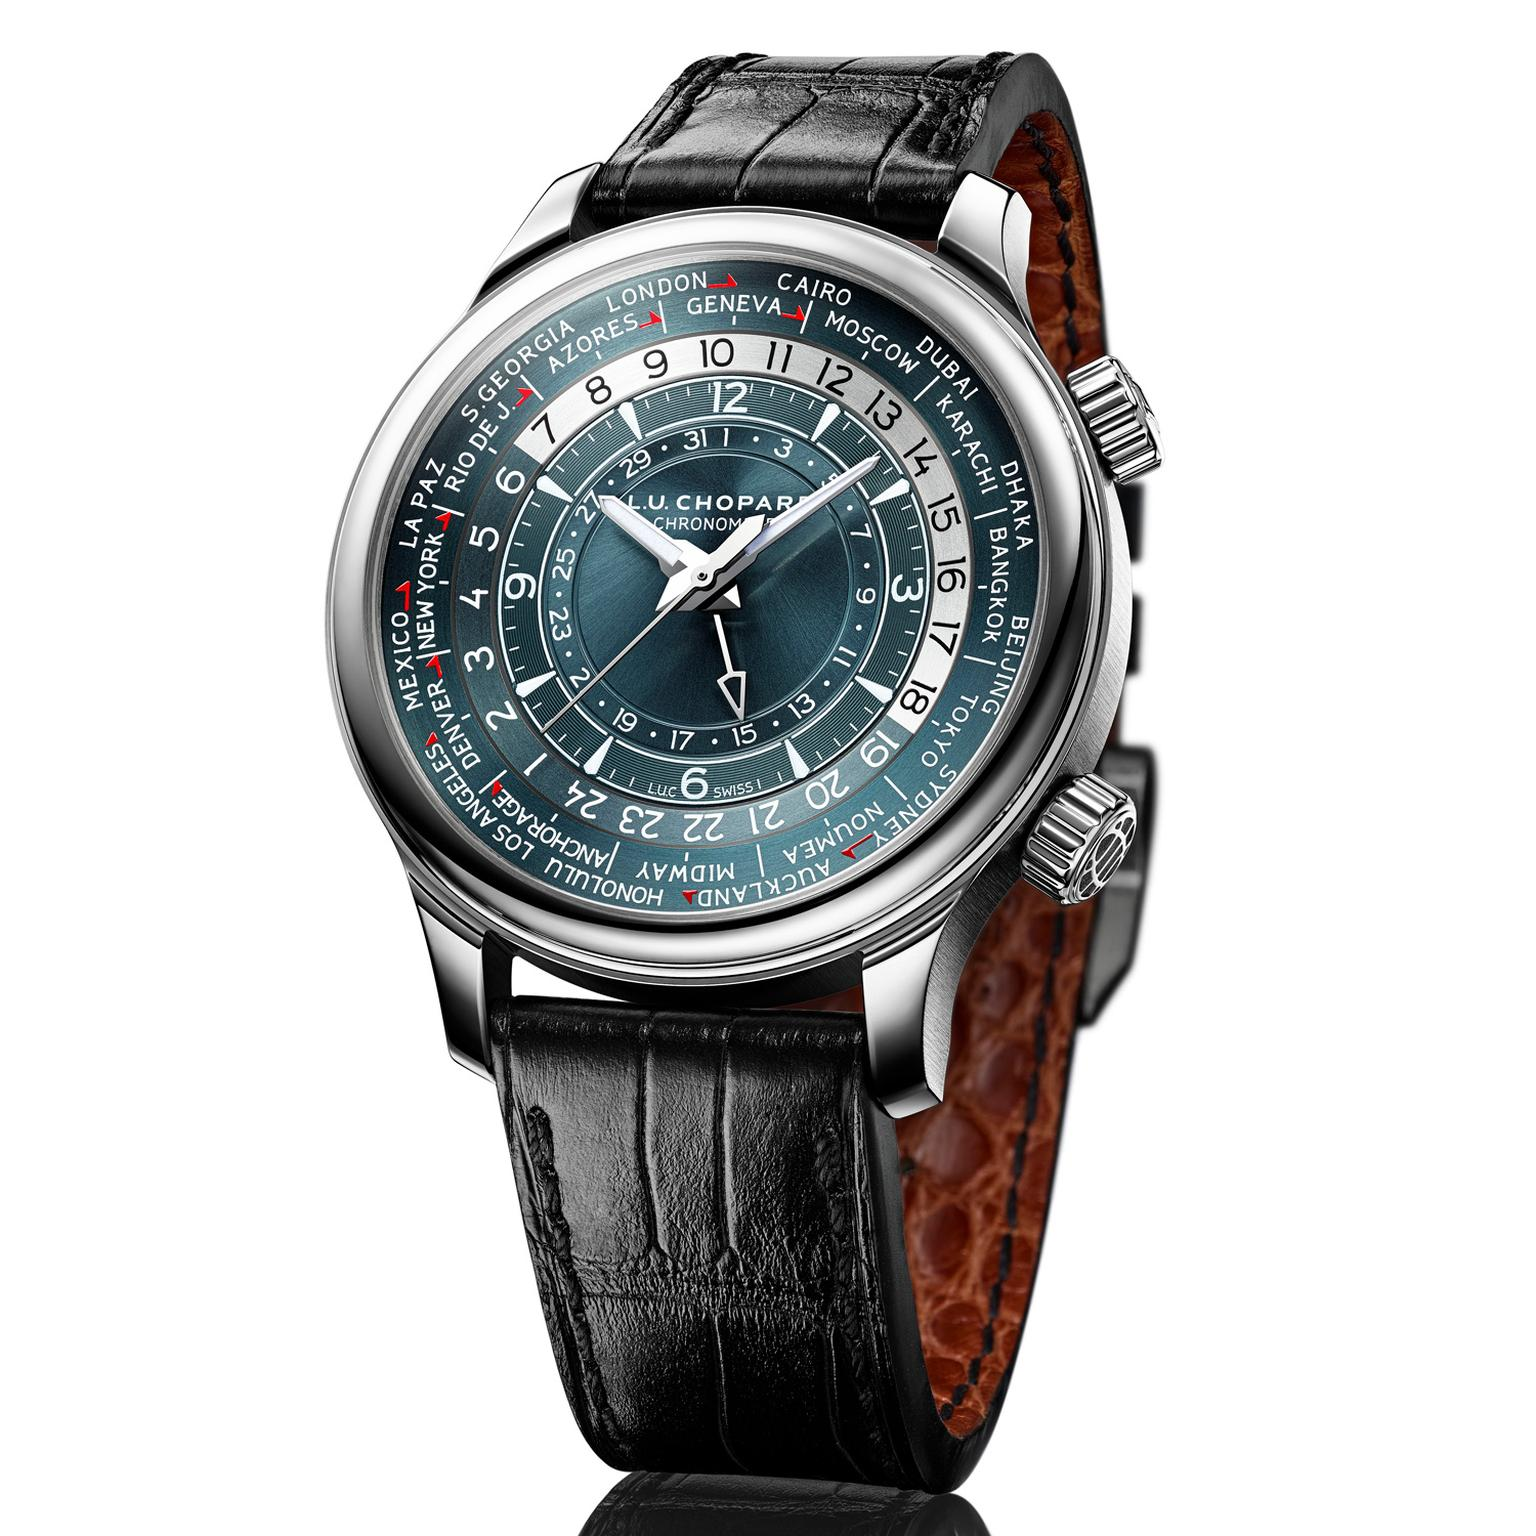 Chopard L.U.C Time Traveler One watch in platinum